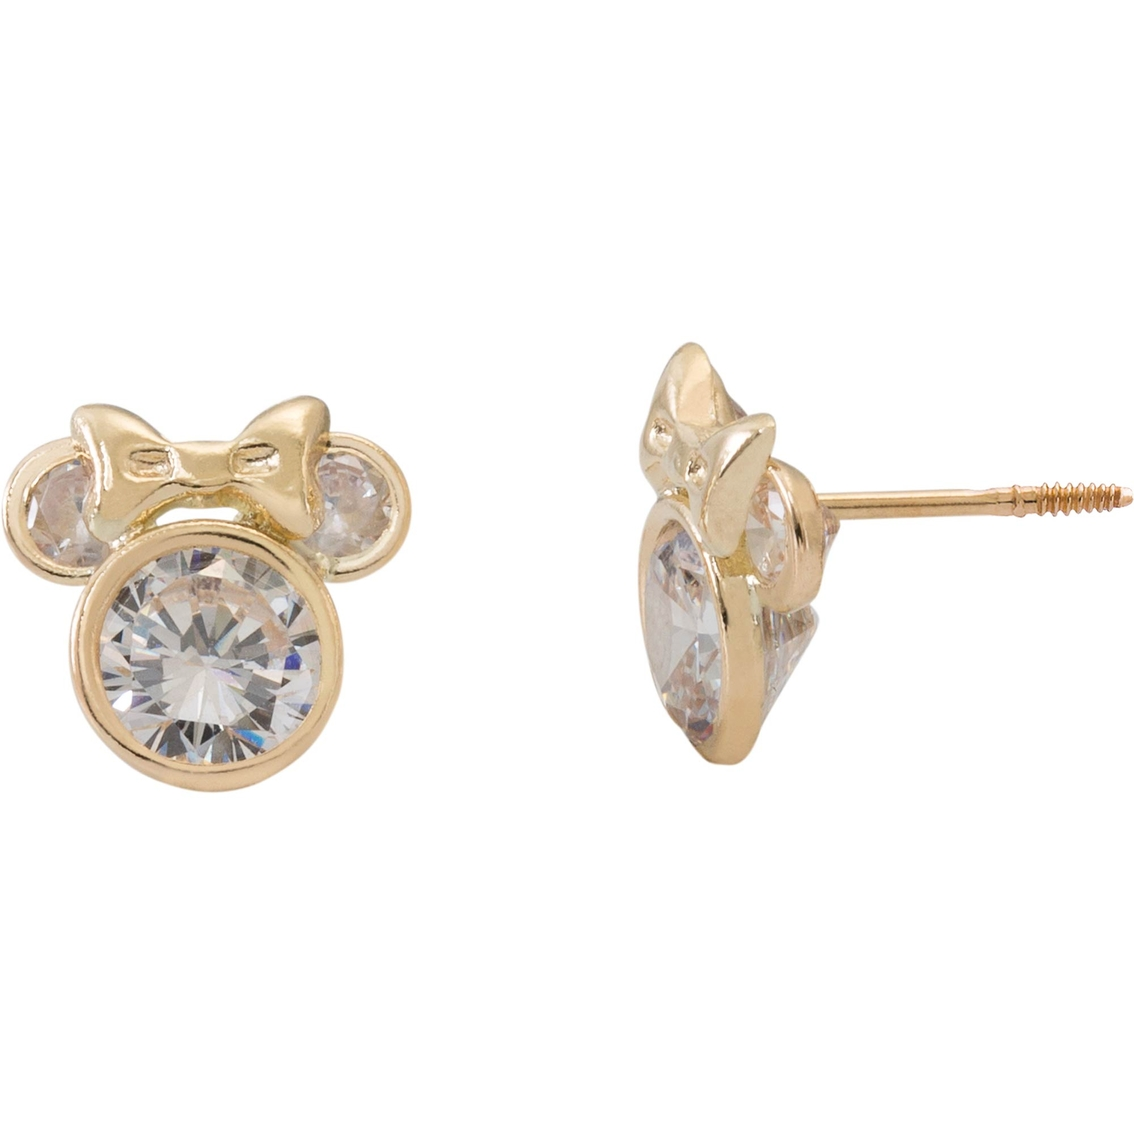 Disney 14k Gold Minnie Mouse Cubic Zirconia Stud Earrings